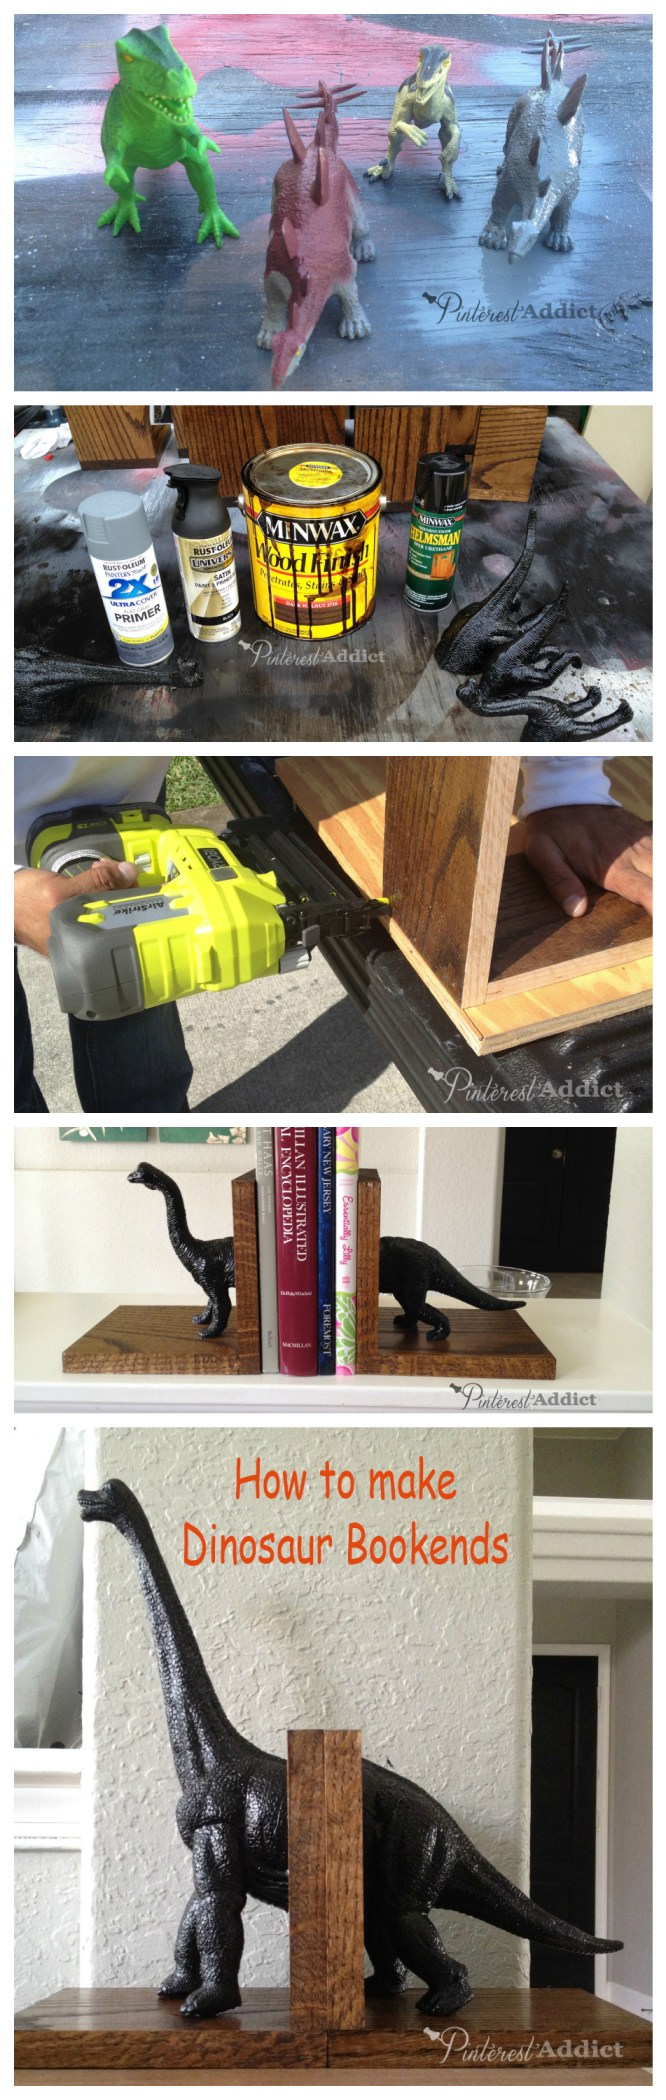 dinosaur bookends - how to make bookends using toys